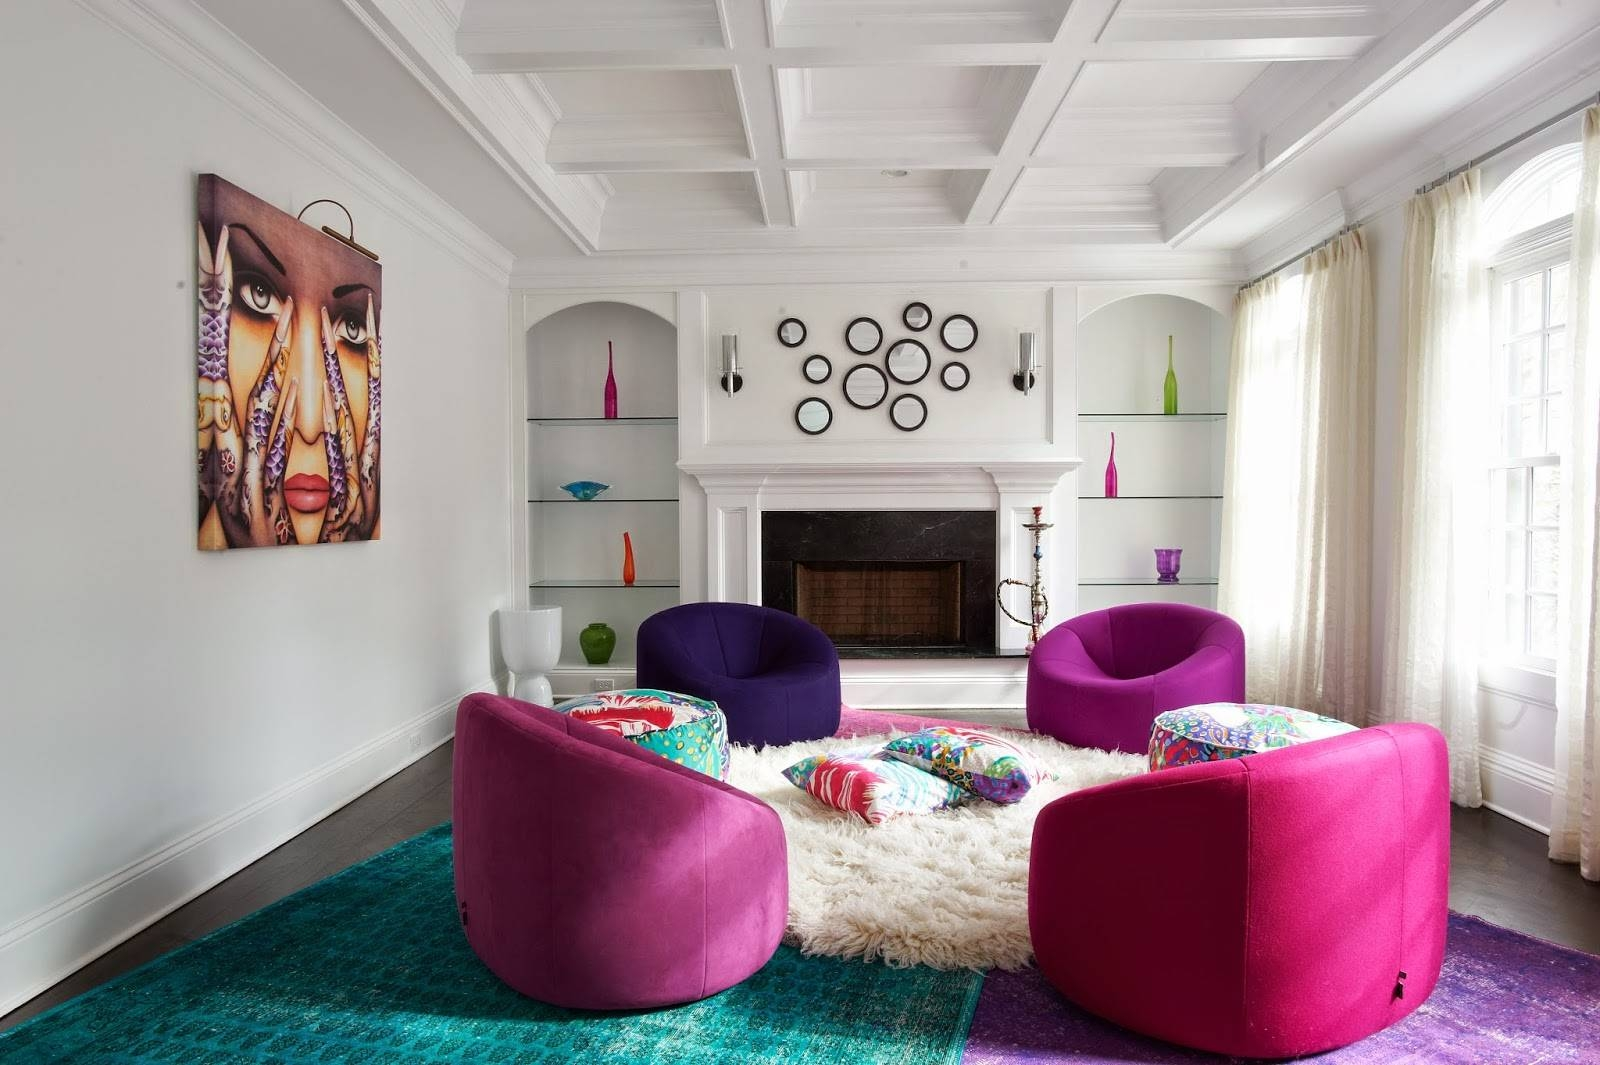 Interior Decoration : Eclectic Art Deco Living Room With Long Dark with regard to Purple Ottoman Coffee Tables (Image 14 of 30)